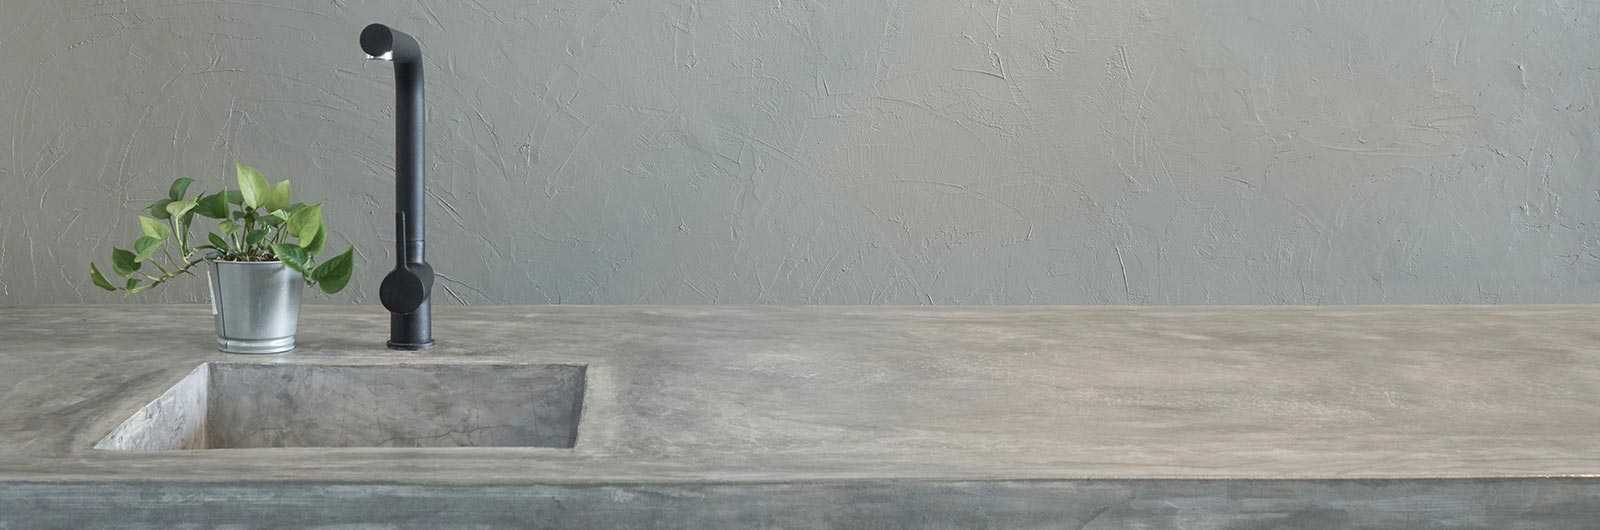 quality concrete countertops fort worth